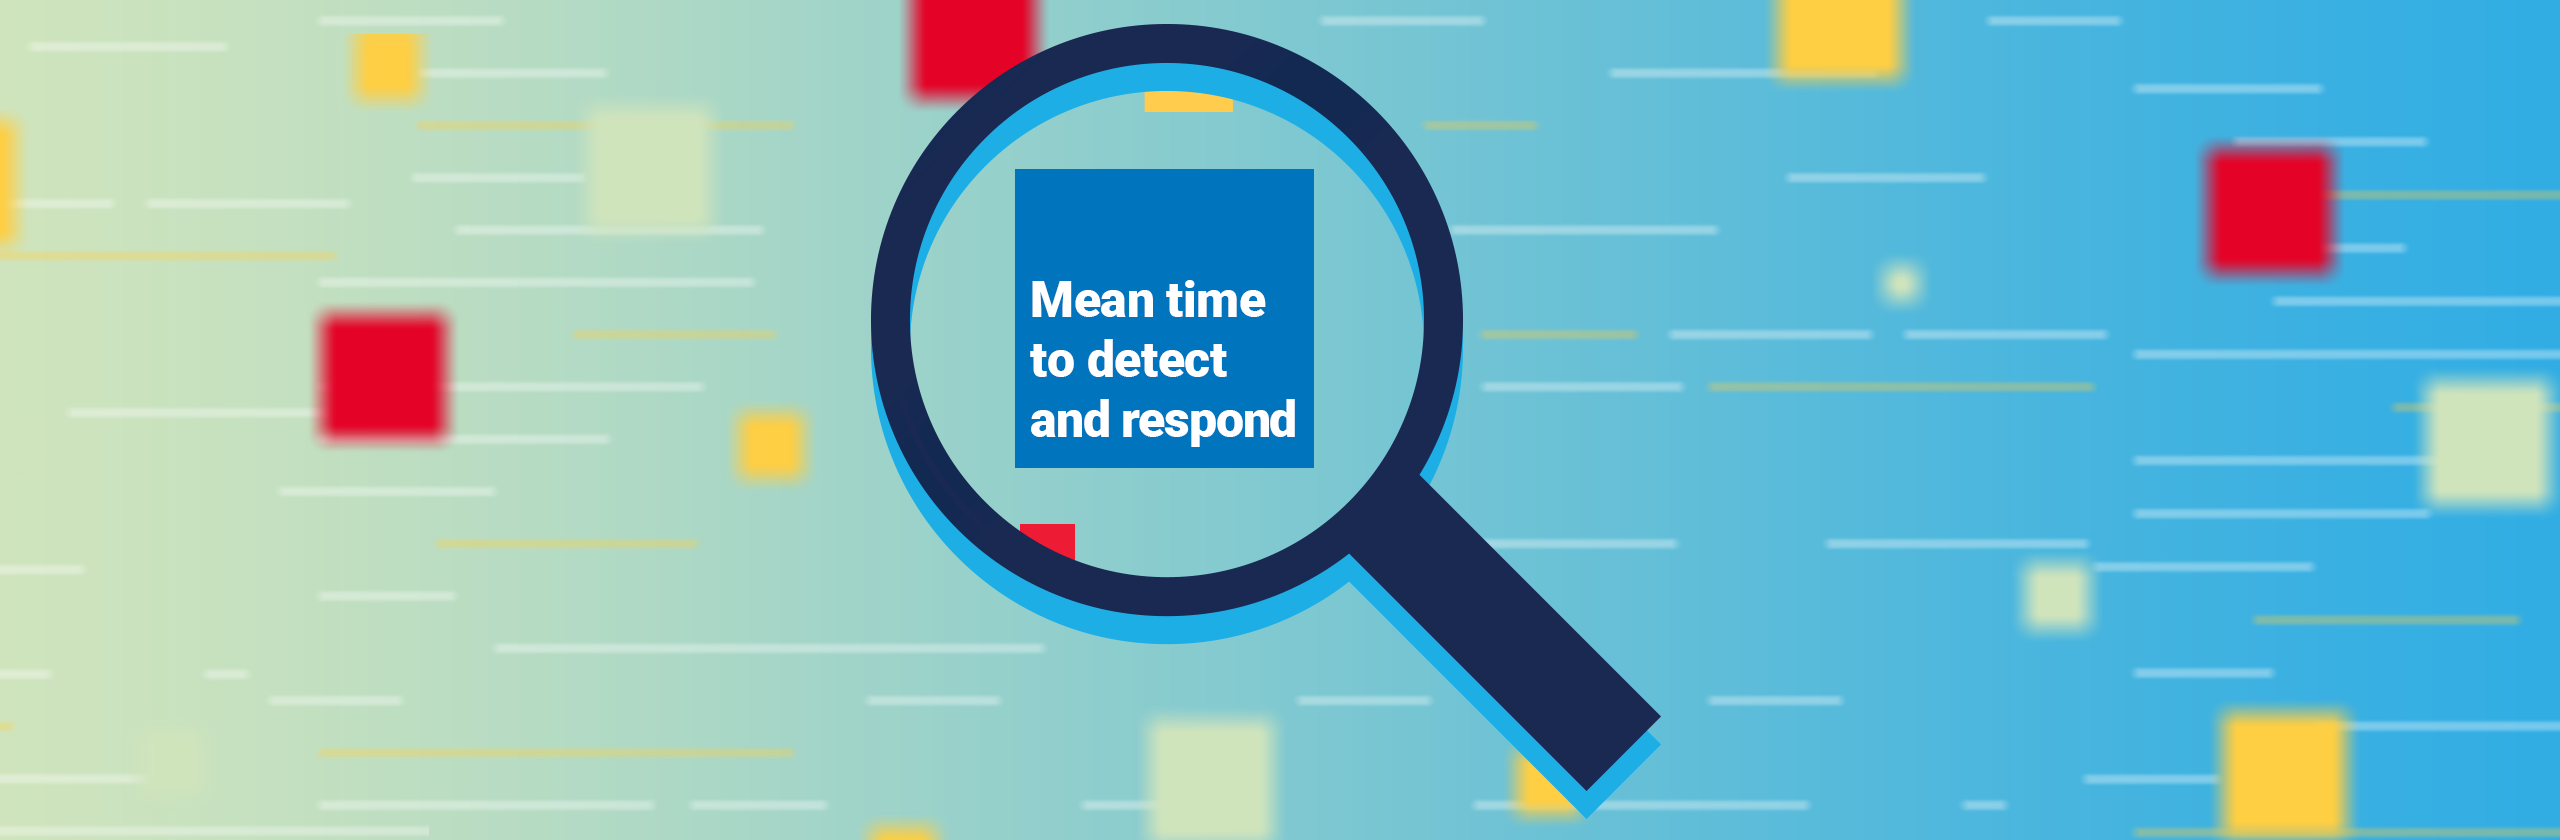 Mean time to detect and respond banner